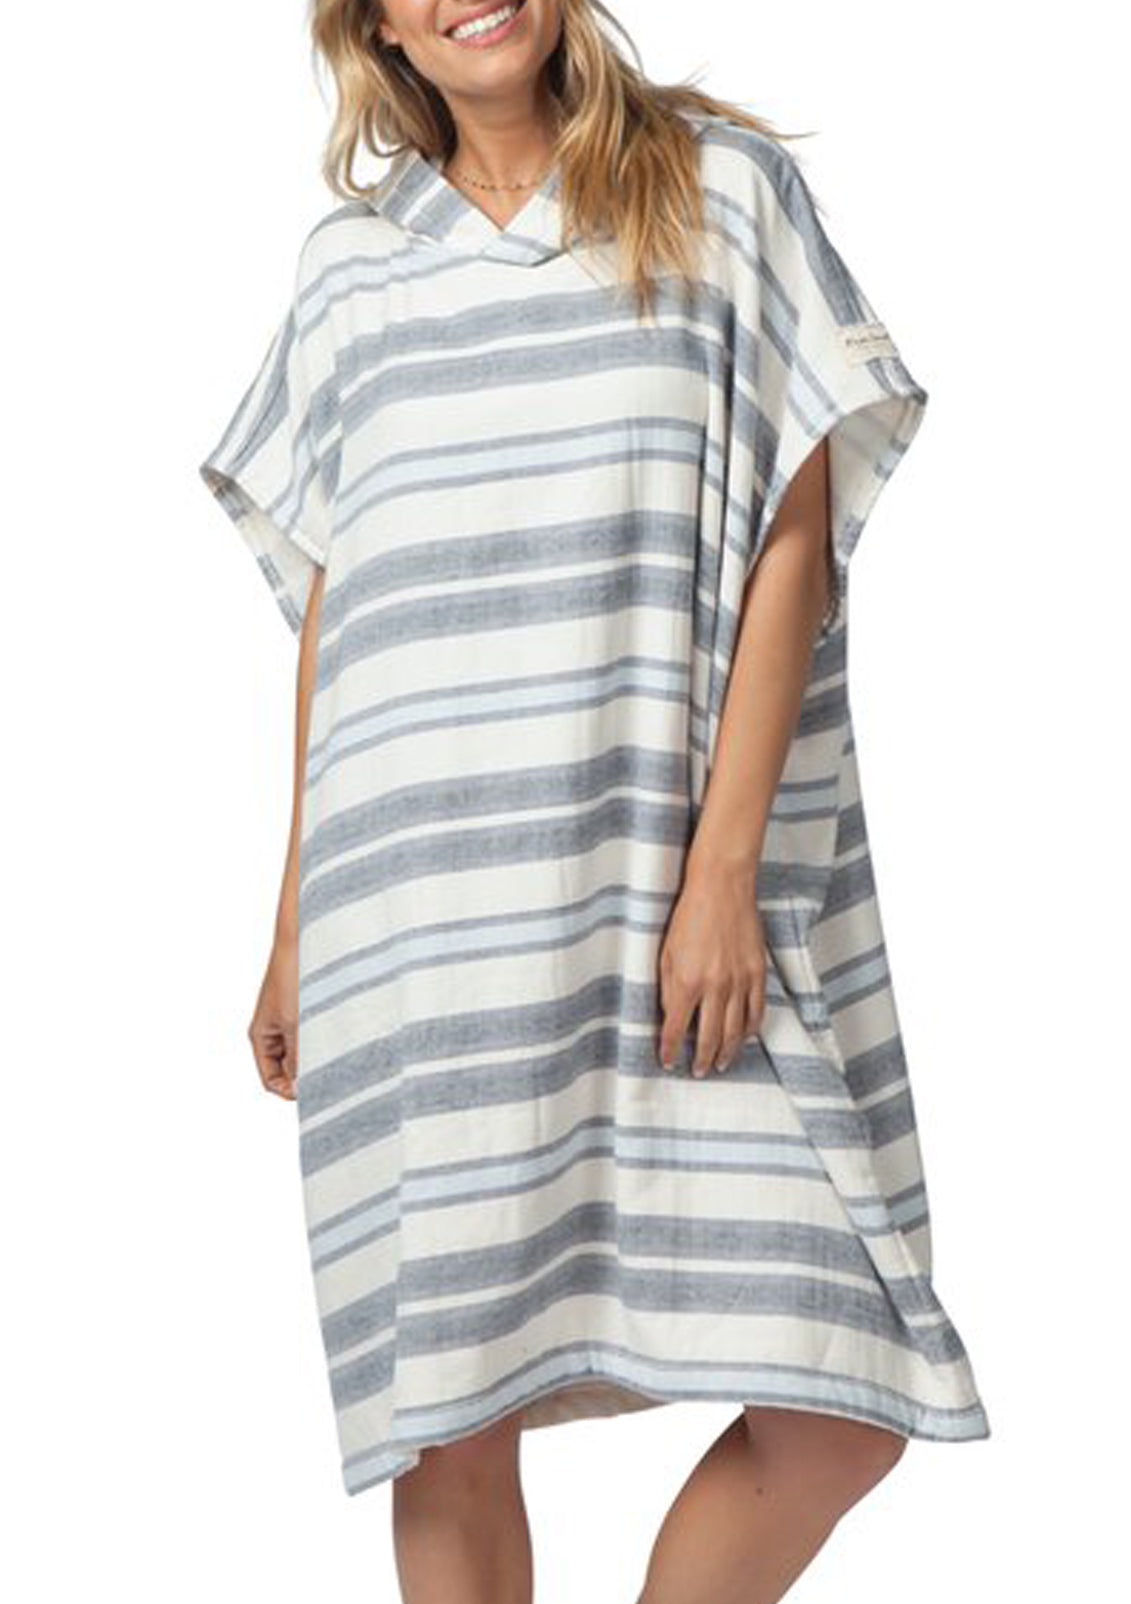 Rip Curl Women's Marley Stripe Hooded Towel